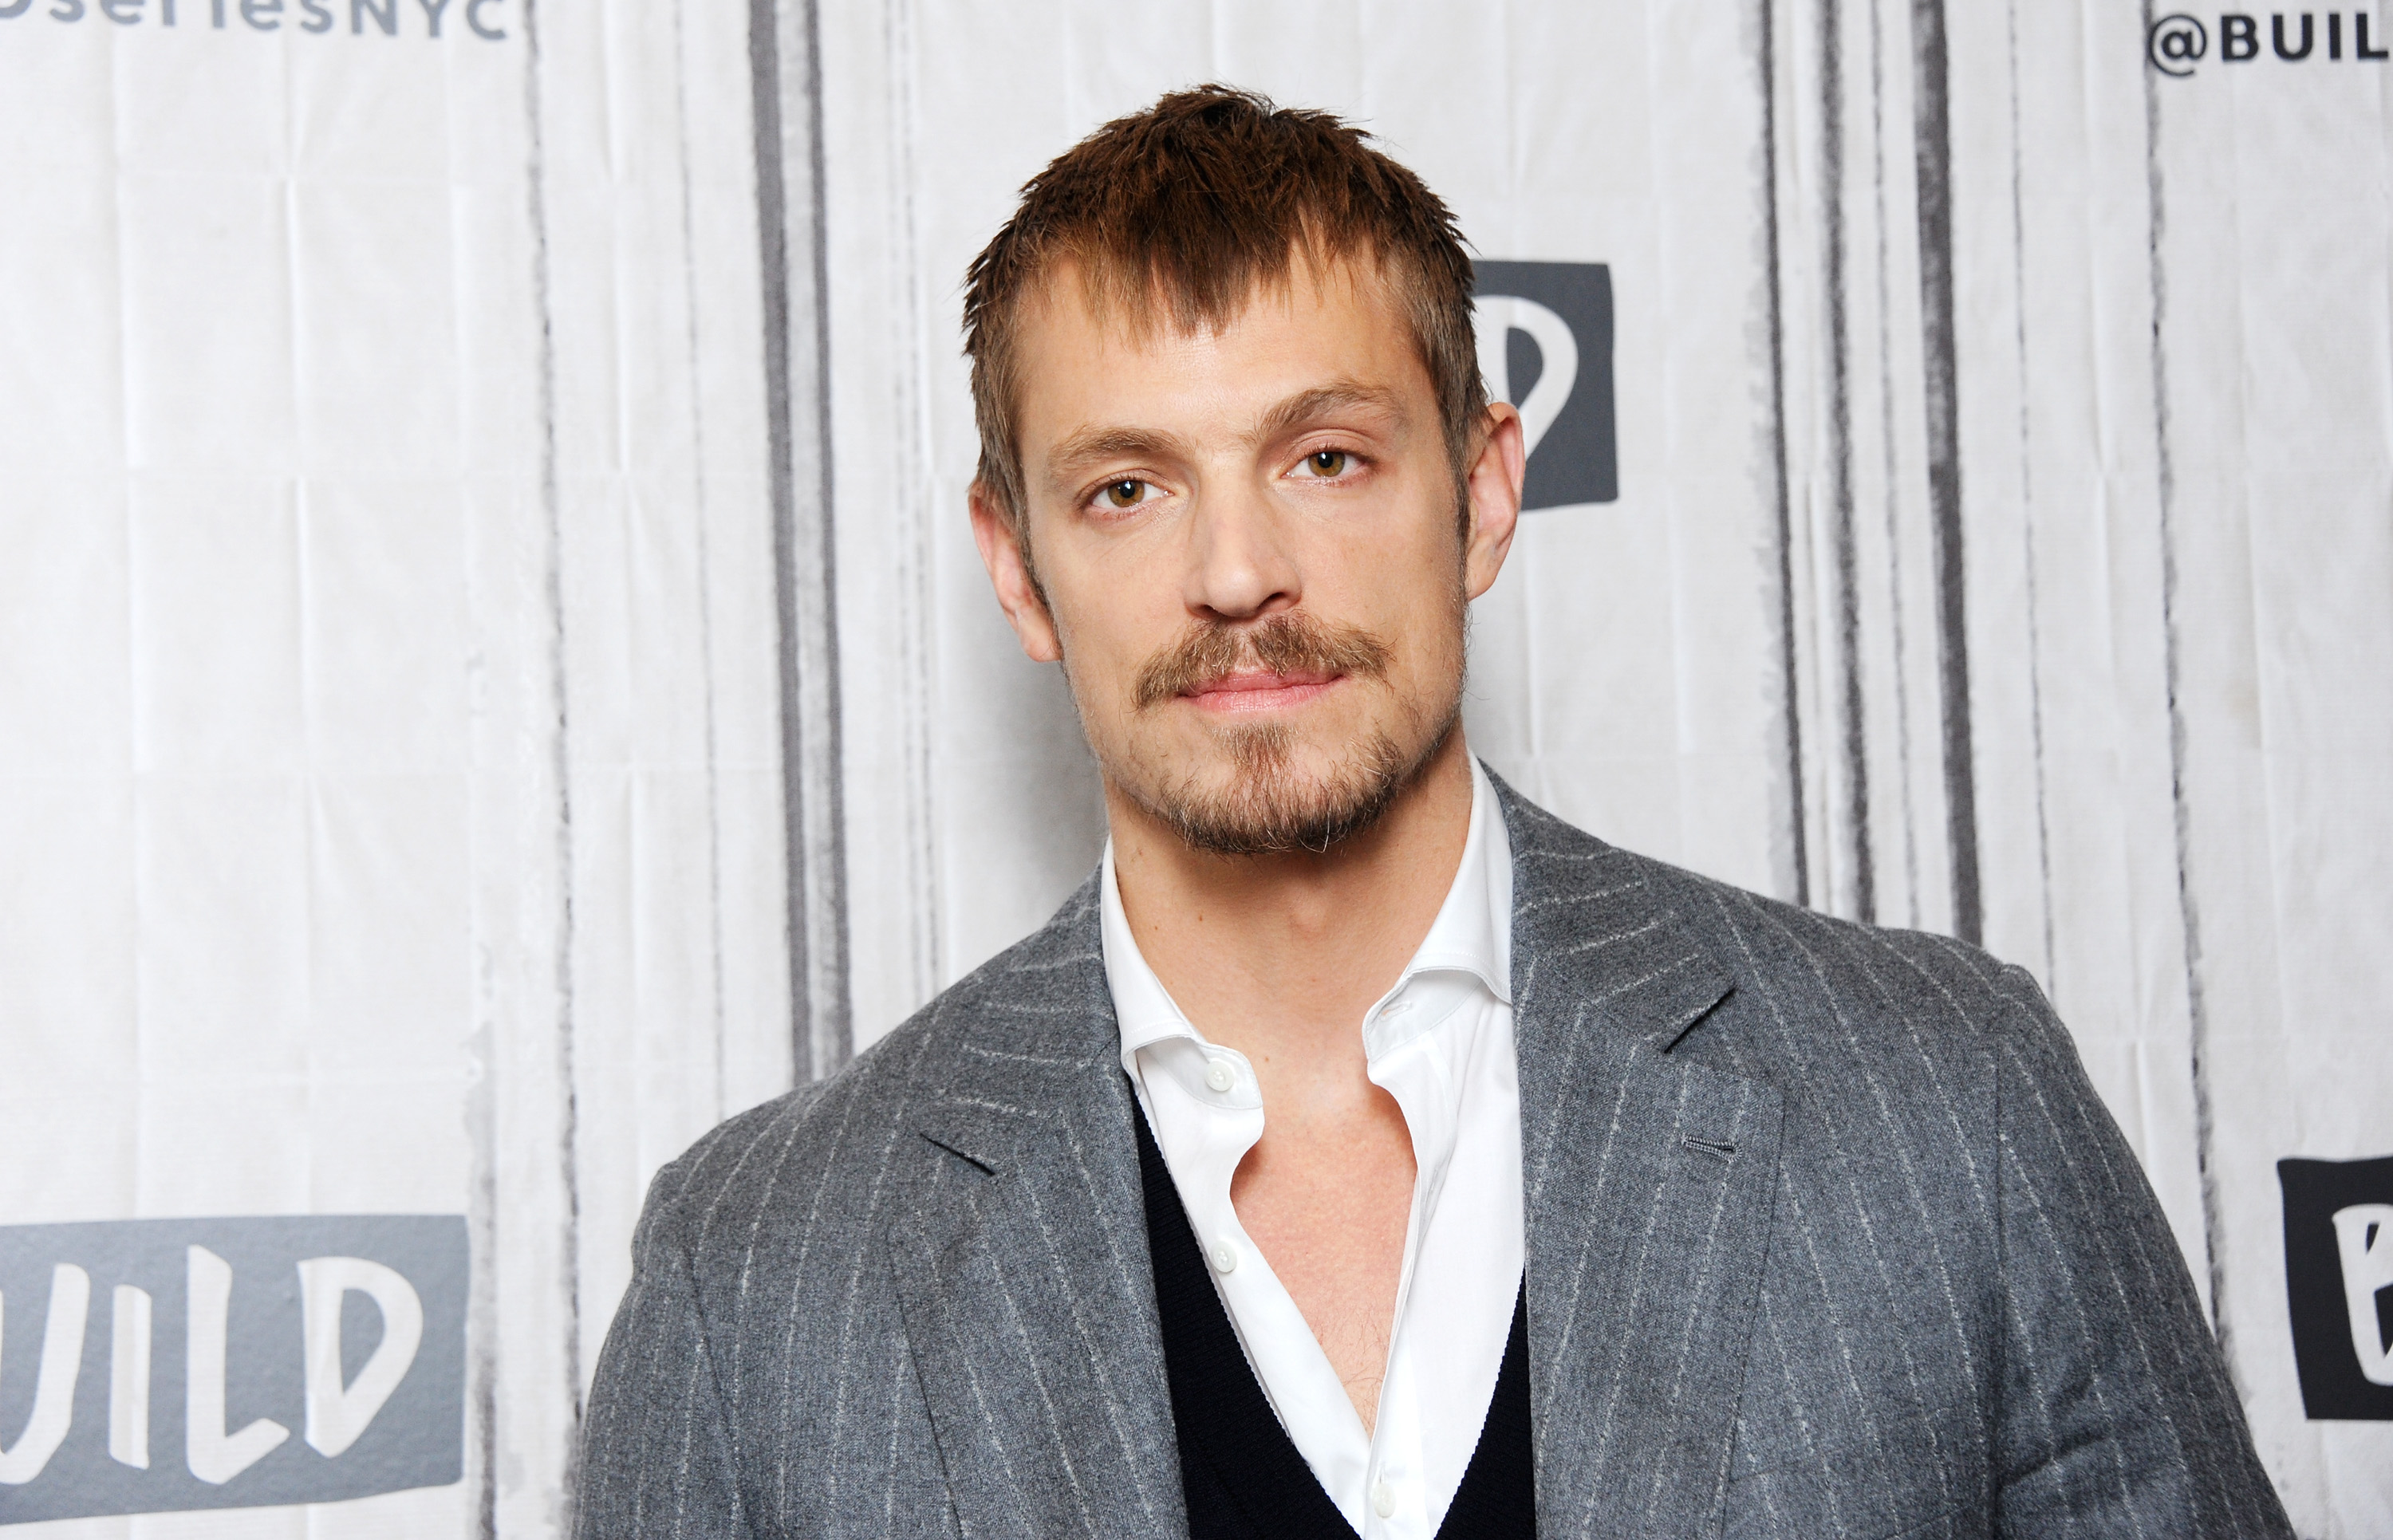 Actor Joel Kinnaman visits Build Series to discuss TV series 'Altered Carbon' at Build Studio on January 31, 2018 in New York City.  (Photo by Desiree Navarro/WireImage)